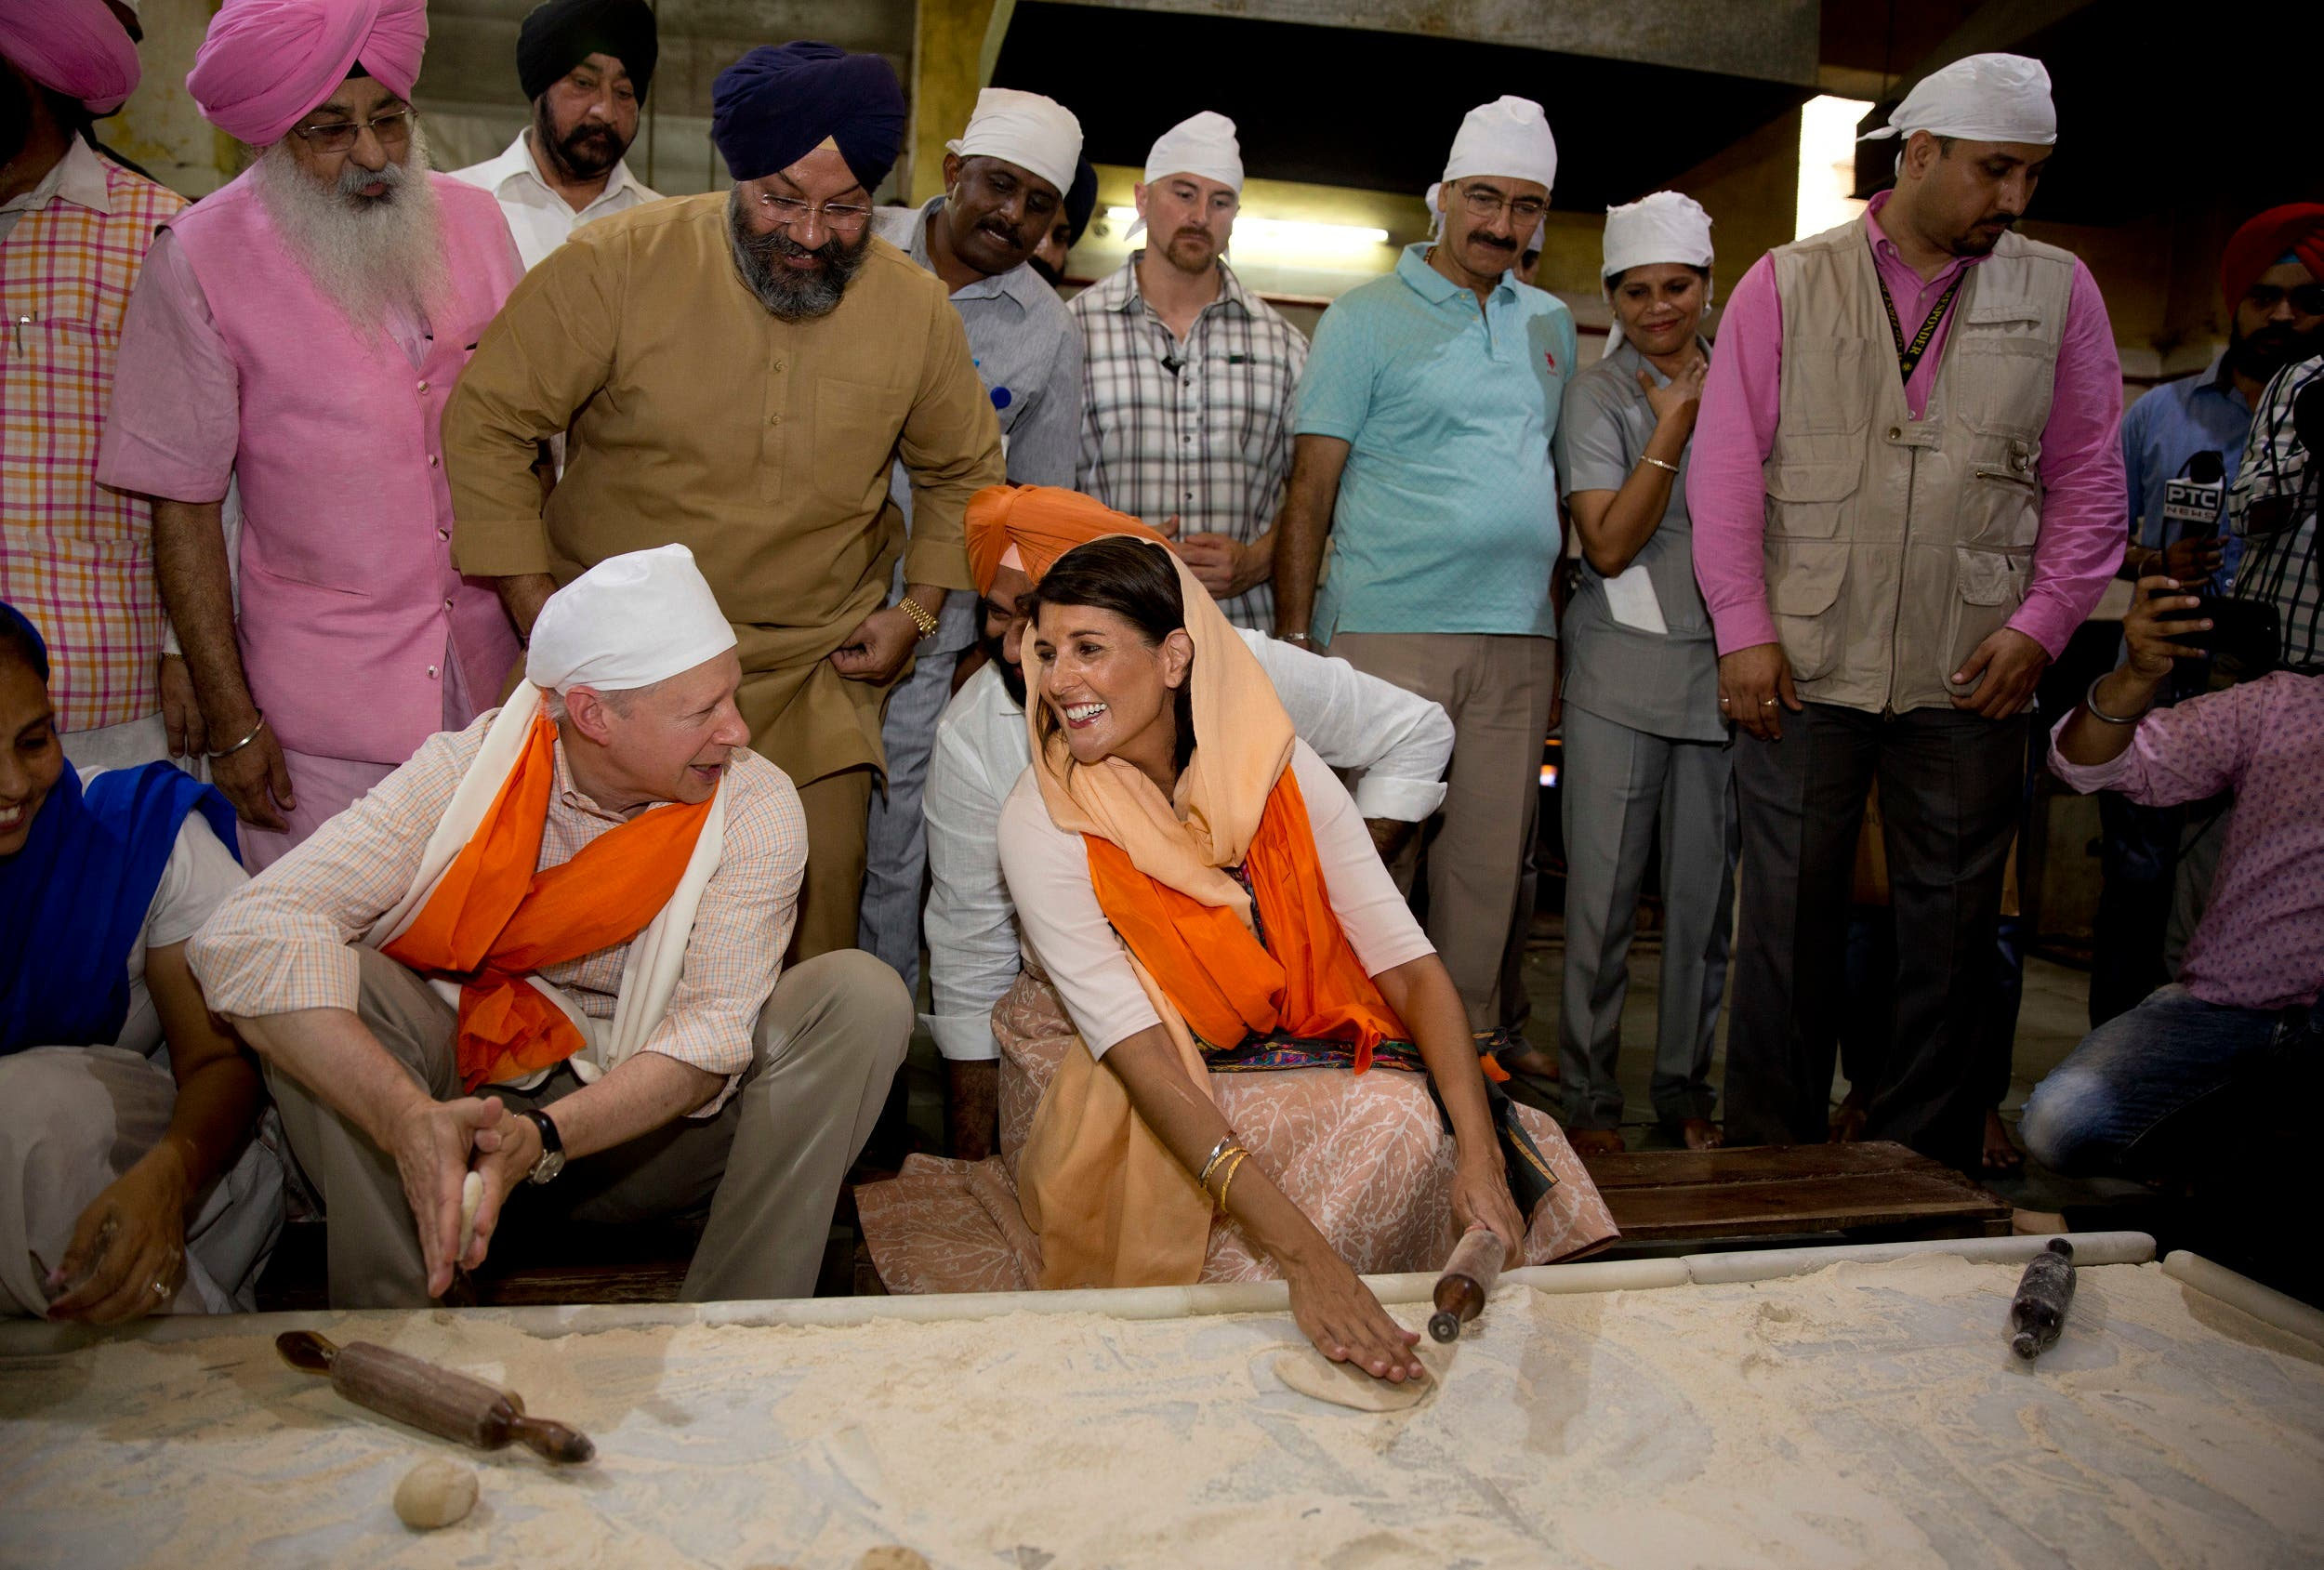 Nikki Haley talks with US ambassador to India Kenneth I. Juster while they try their hands on making Indian bread during their visit to a Gurdwara Sis Ganj Sahib, a Sikh temple, in New Delhi, on June 28, 2018. (AP)